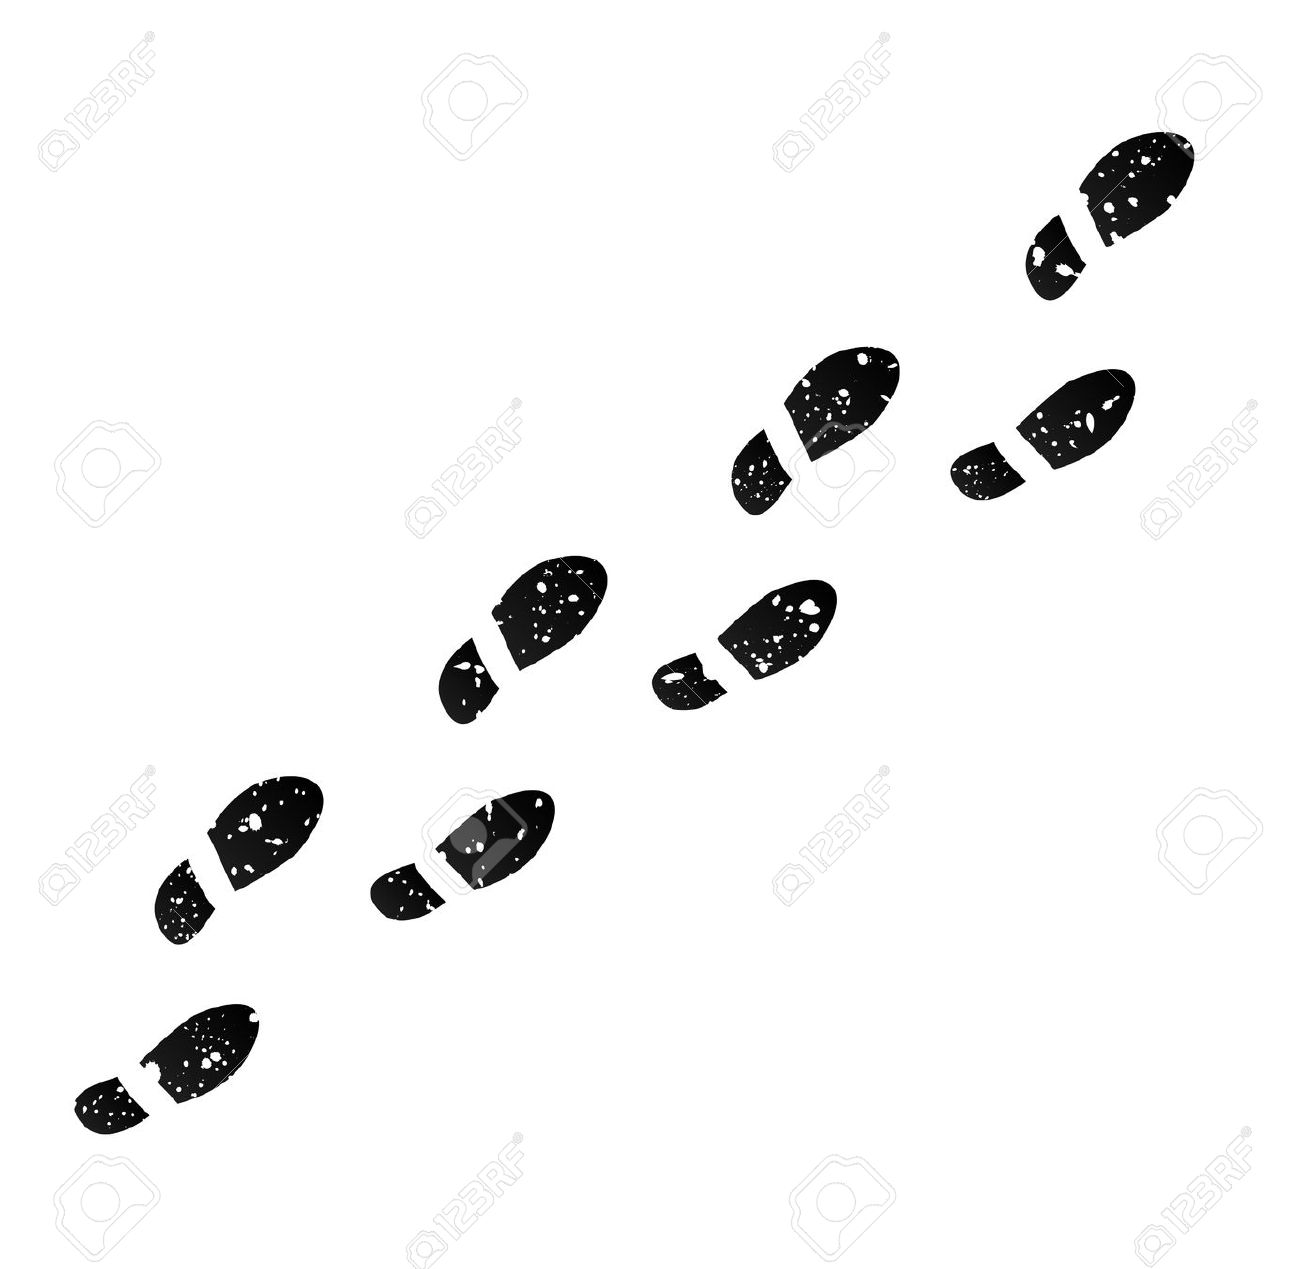 Footsteps Clipart Trail Footsteps Trail Transparent Free